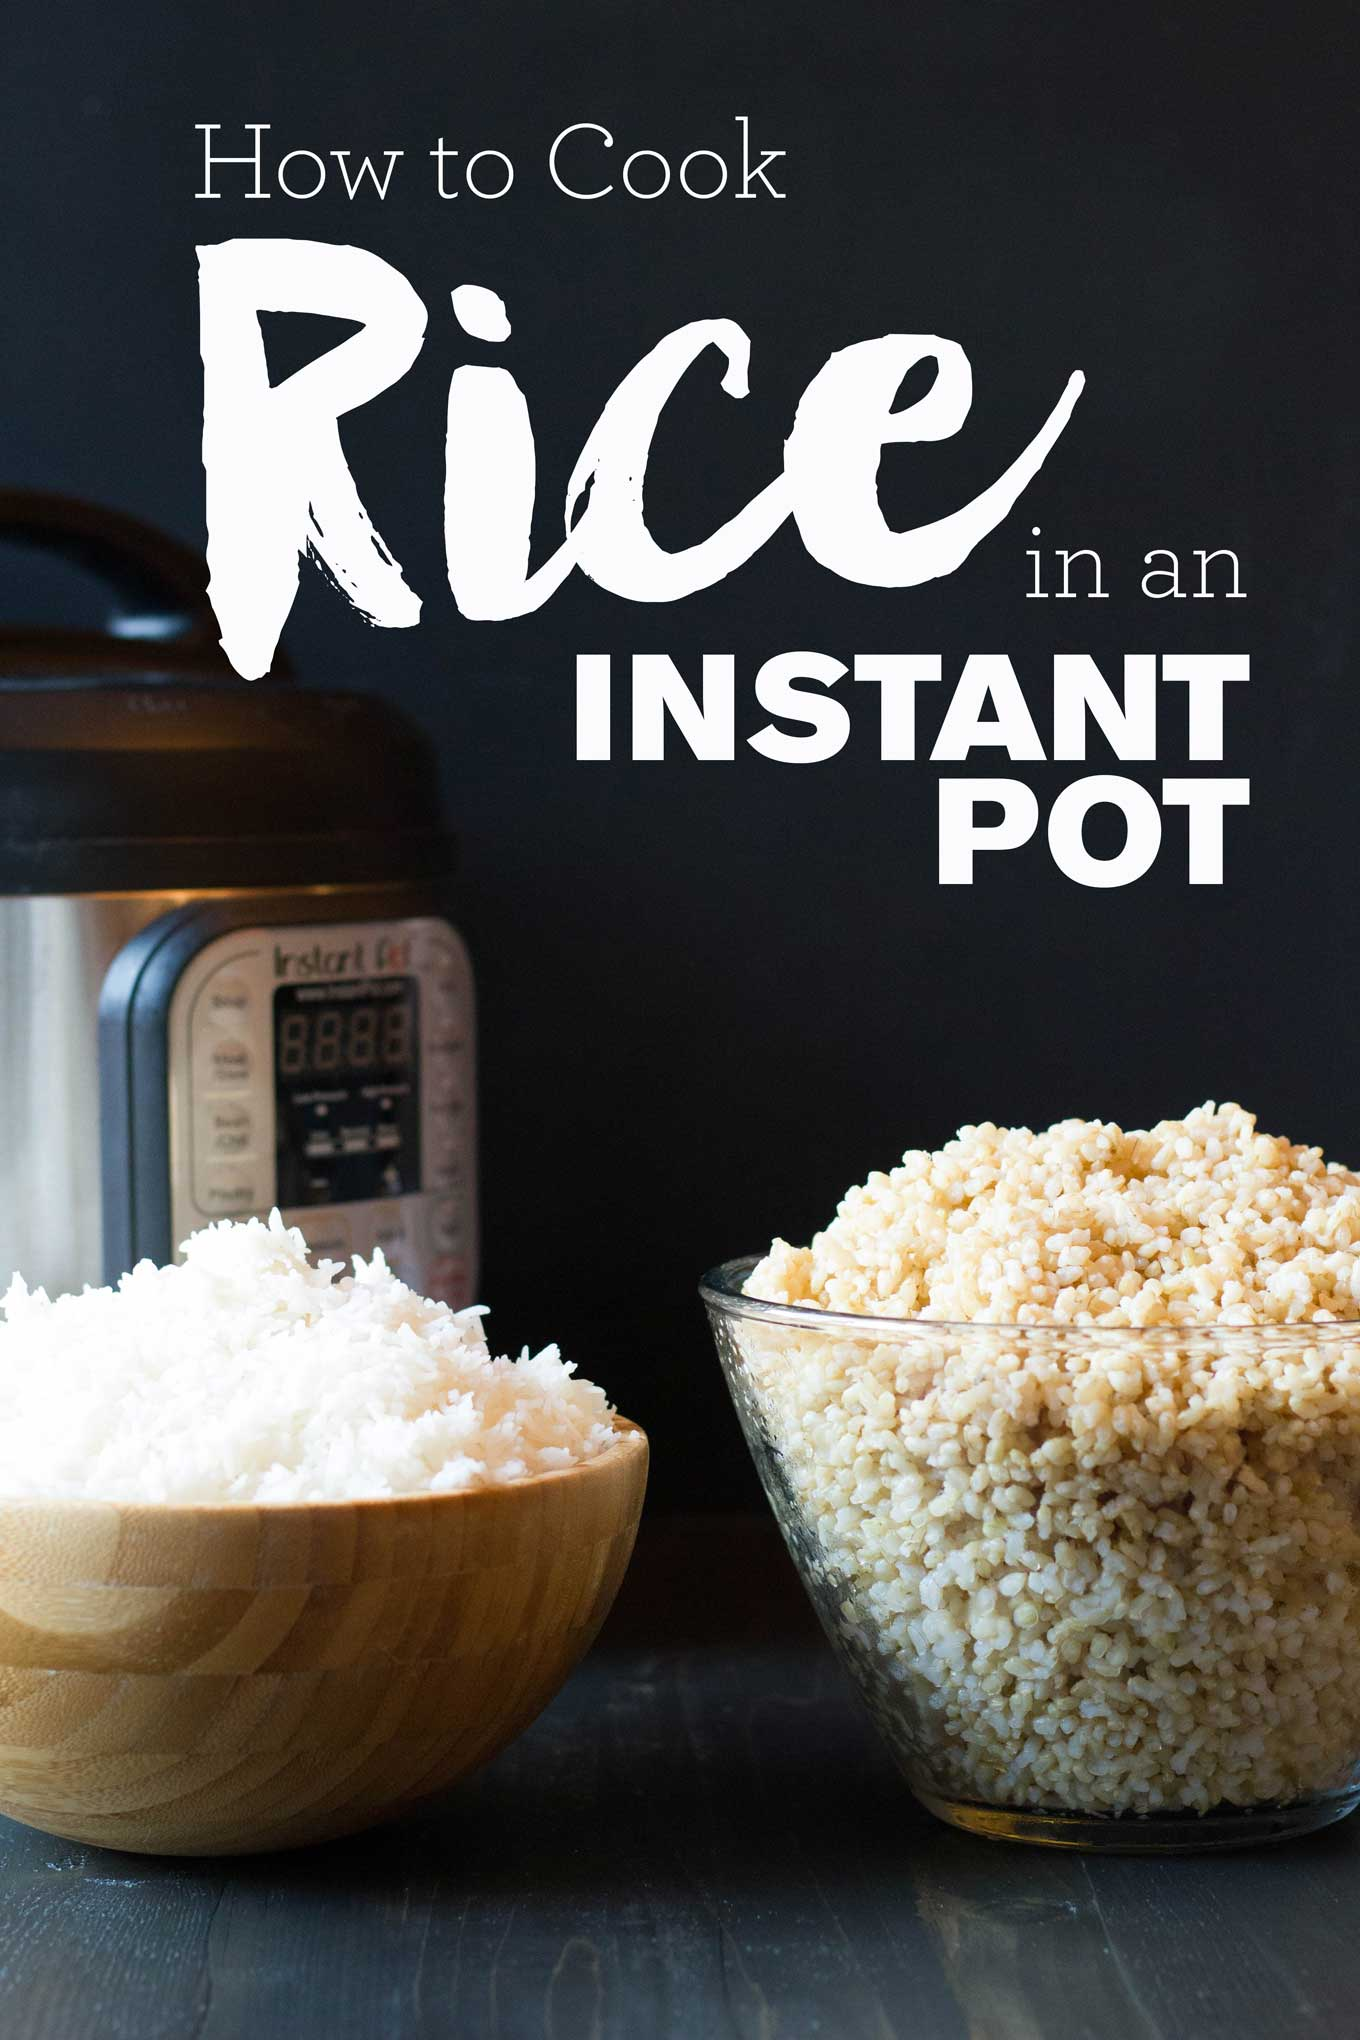 How to Cook Rice in an Instant Pot | Cook White Rice Instant Pot | Cook Brown Rice Instant Pot | https://passtheplants.com